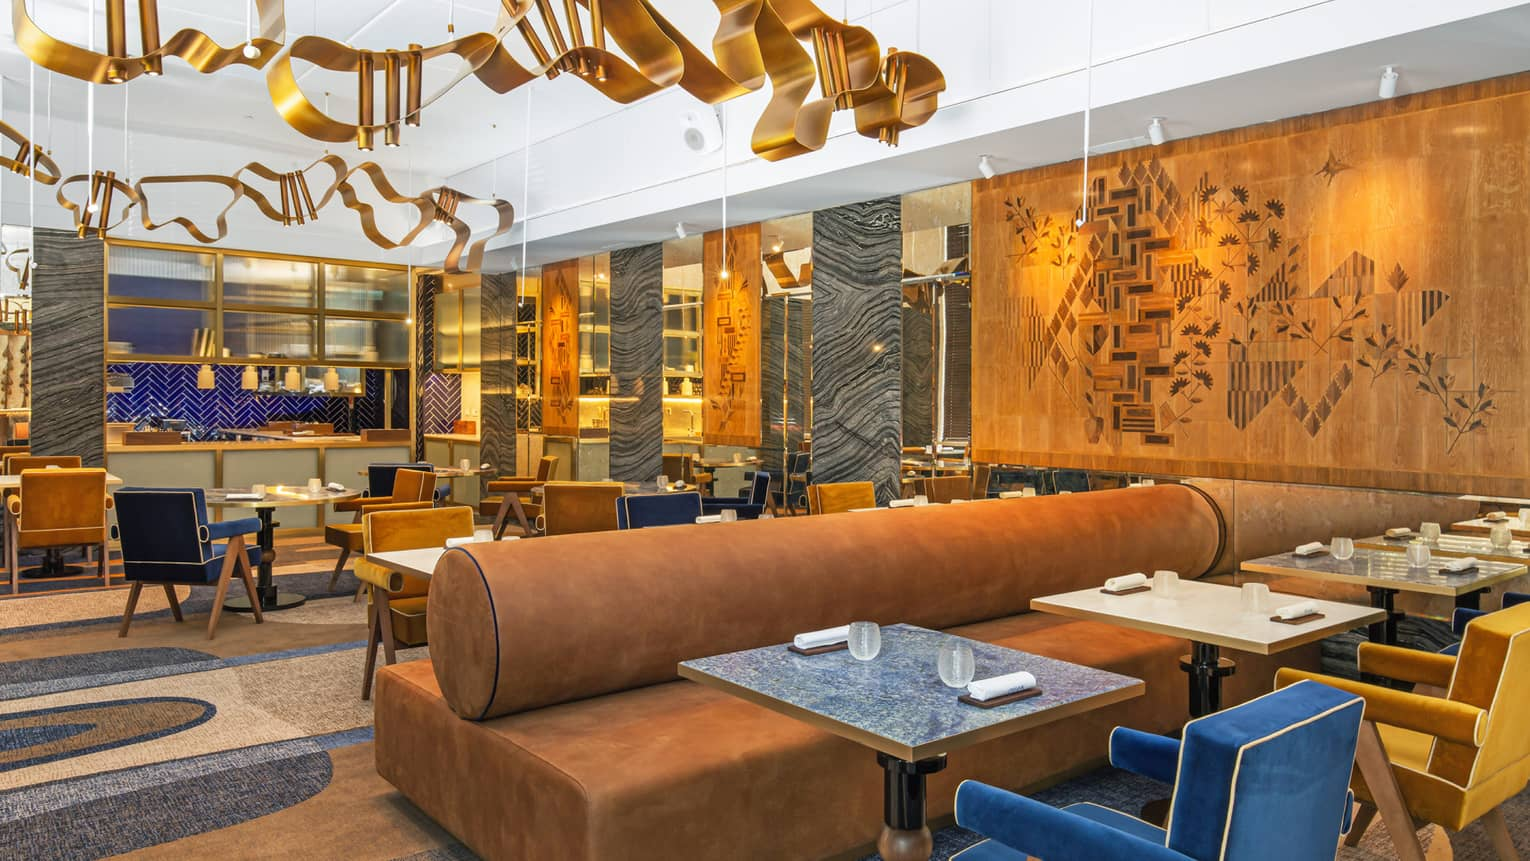 Modern dining area with gold, blue and deep camel accents and art flanking walls and ceiling